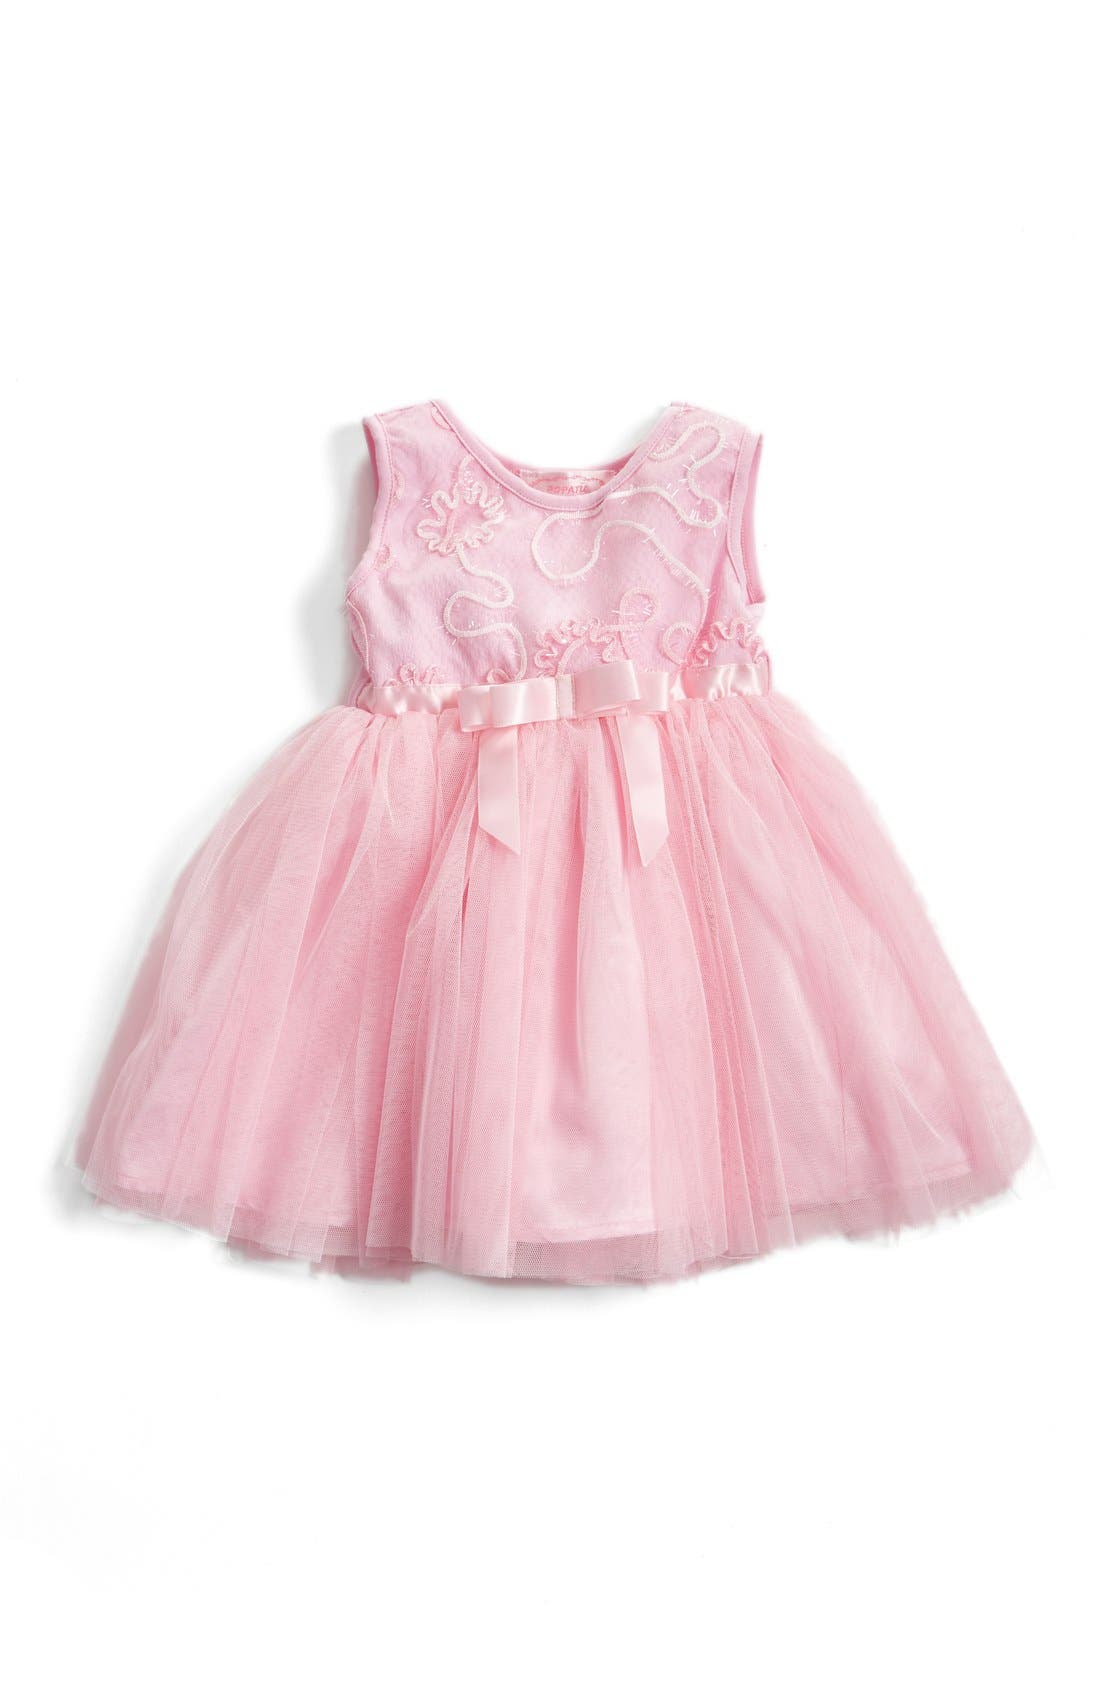 Sequin Flower Tulle Dress,                         Main,                         color, Pink